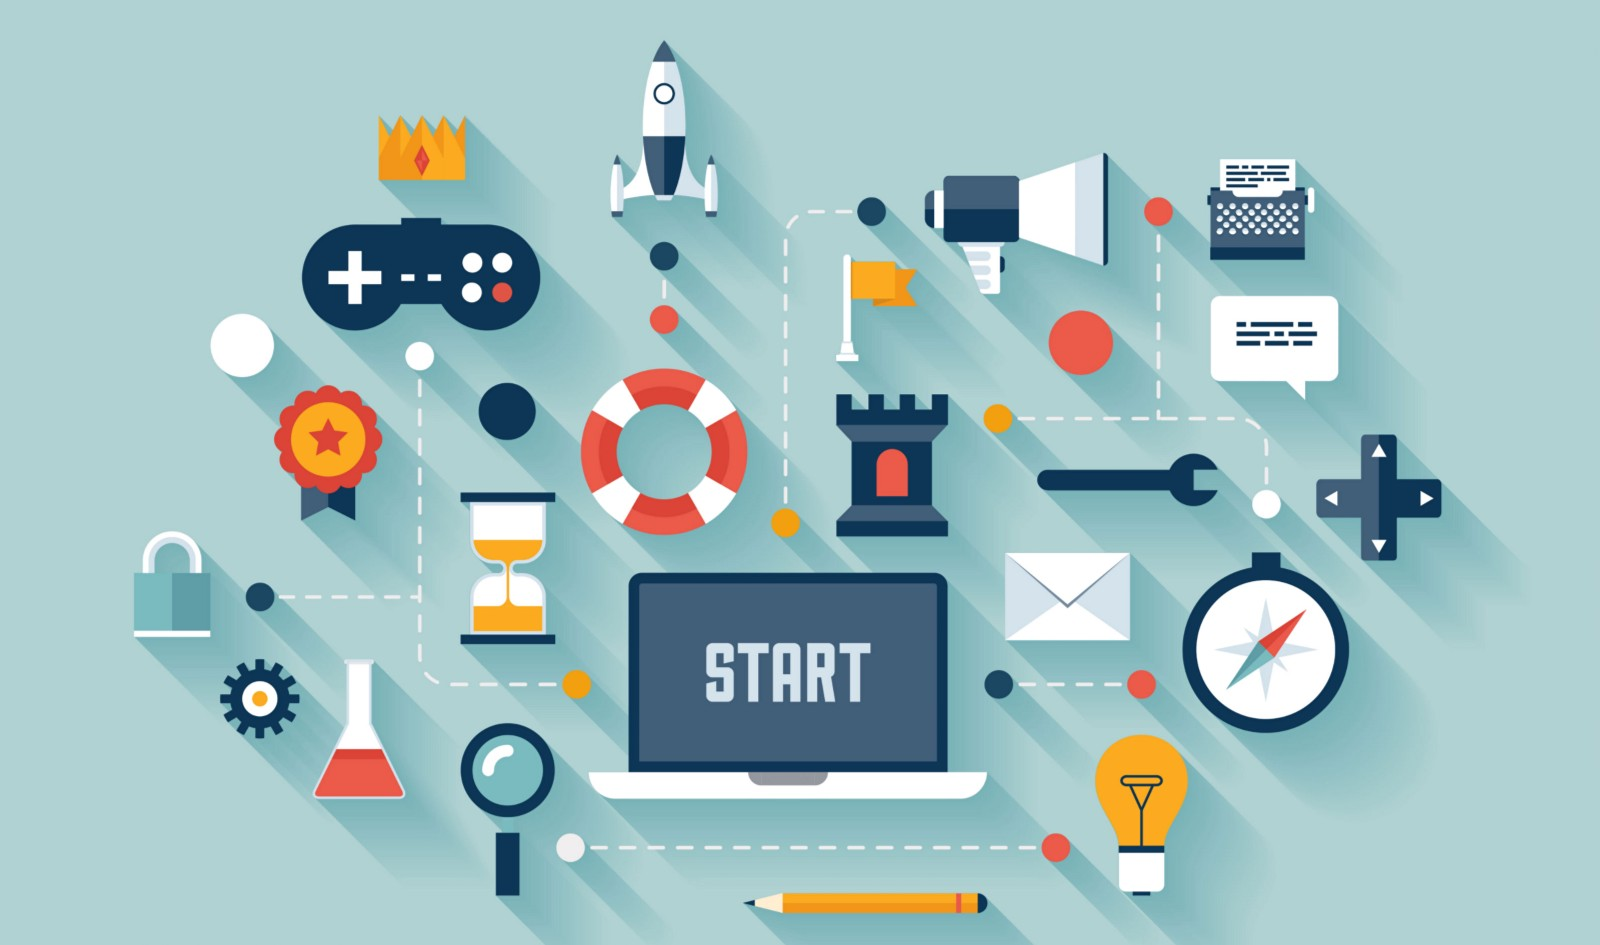 100+ Tools For Growing Any Startup